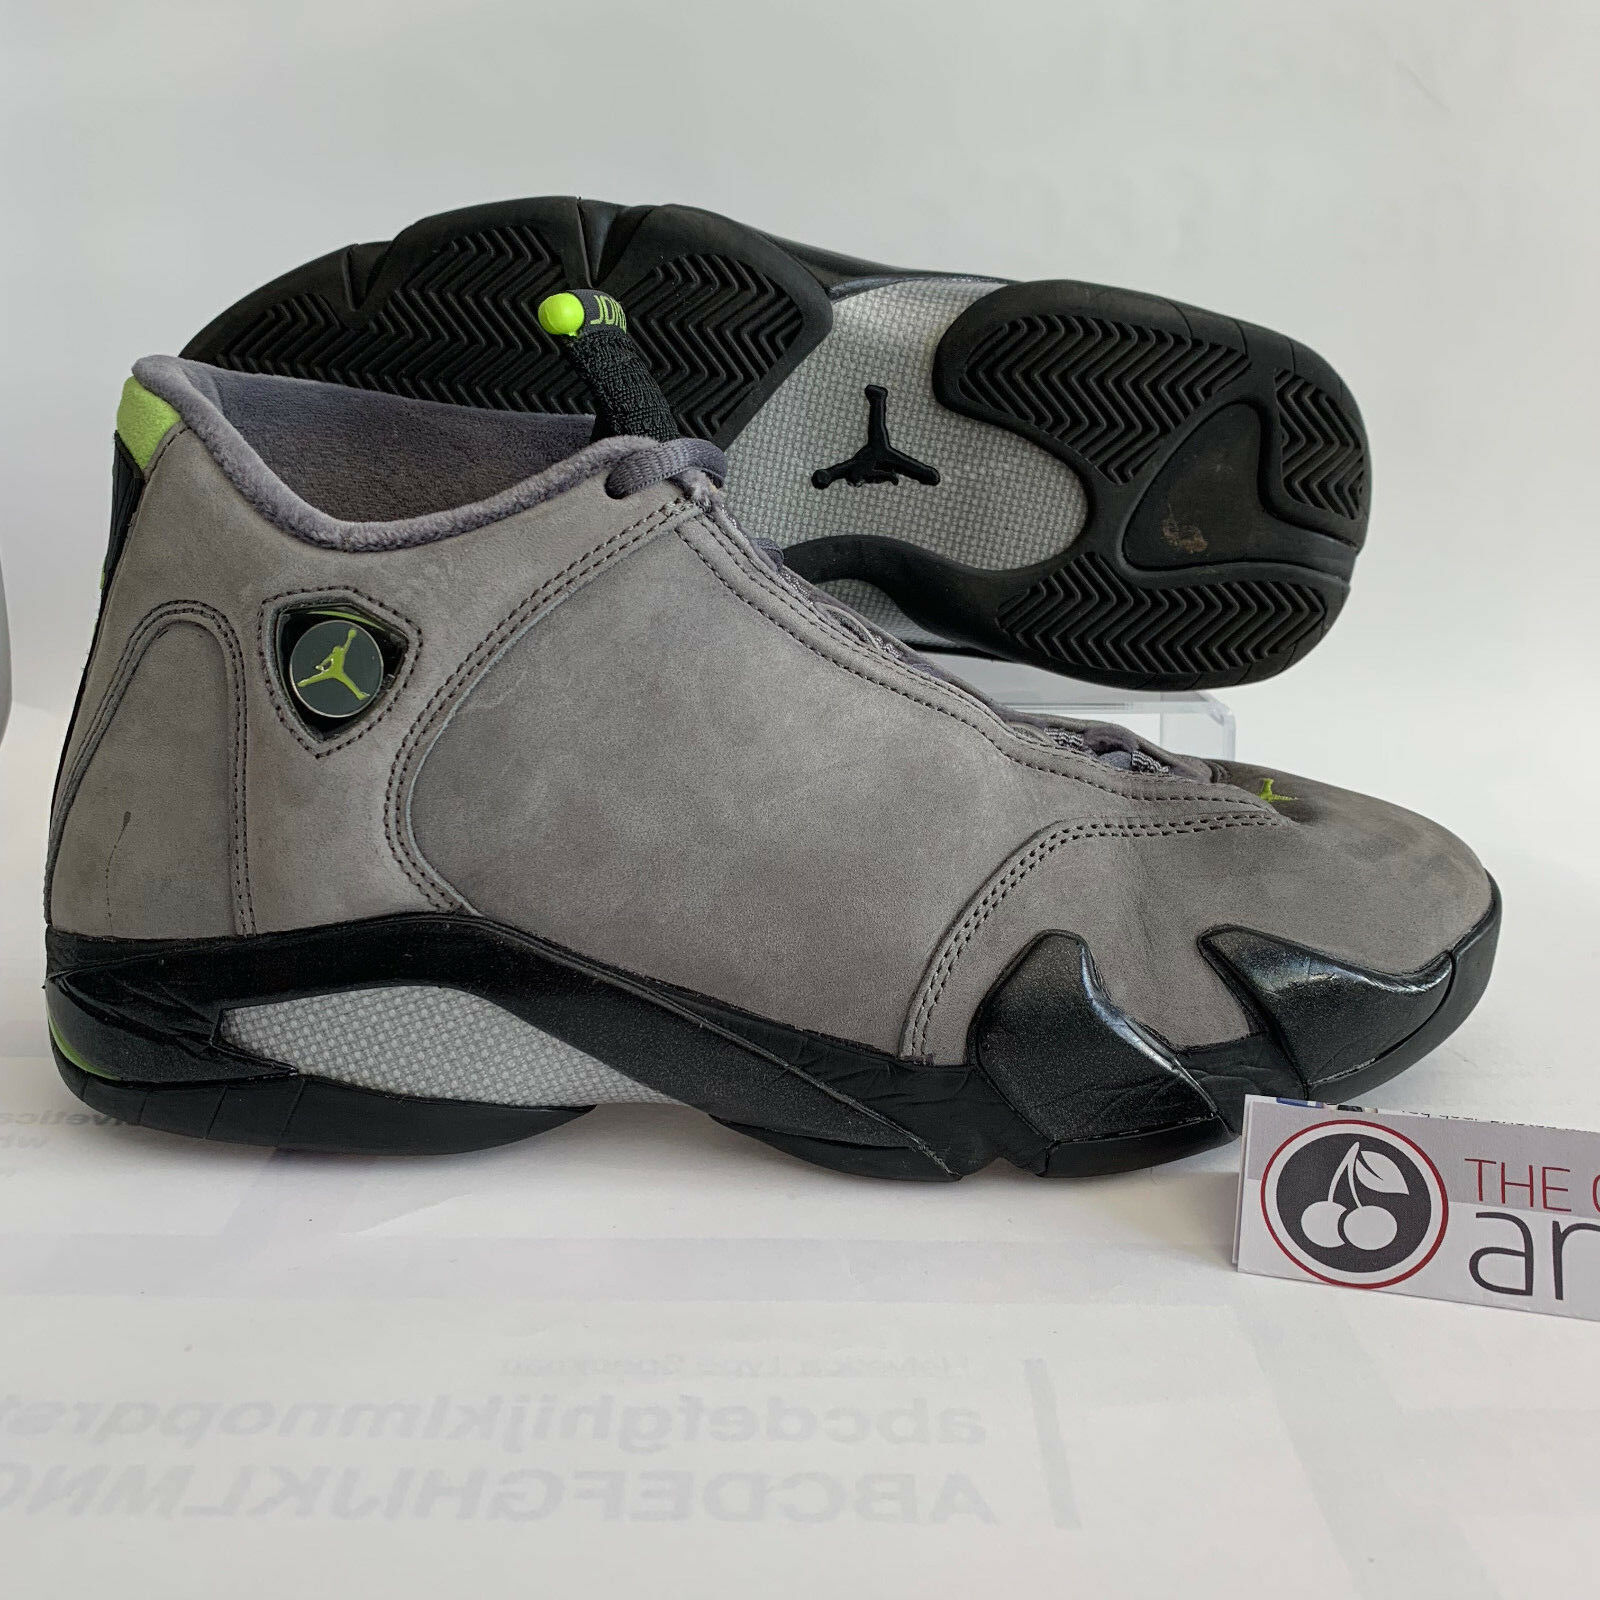 NIKE AIR JORDAN 14 Retro - Größe 10 - 2005  Chartreuse  +FREE Sole Collector